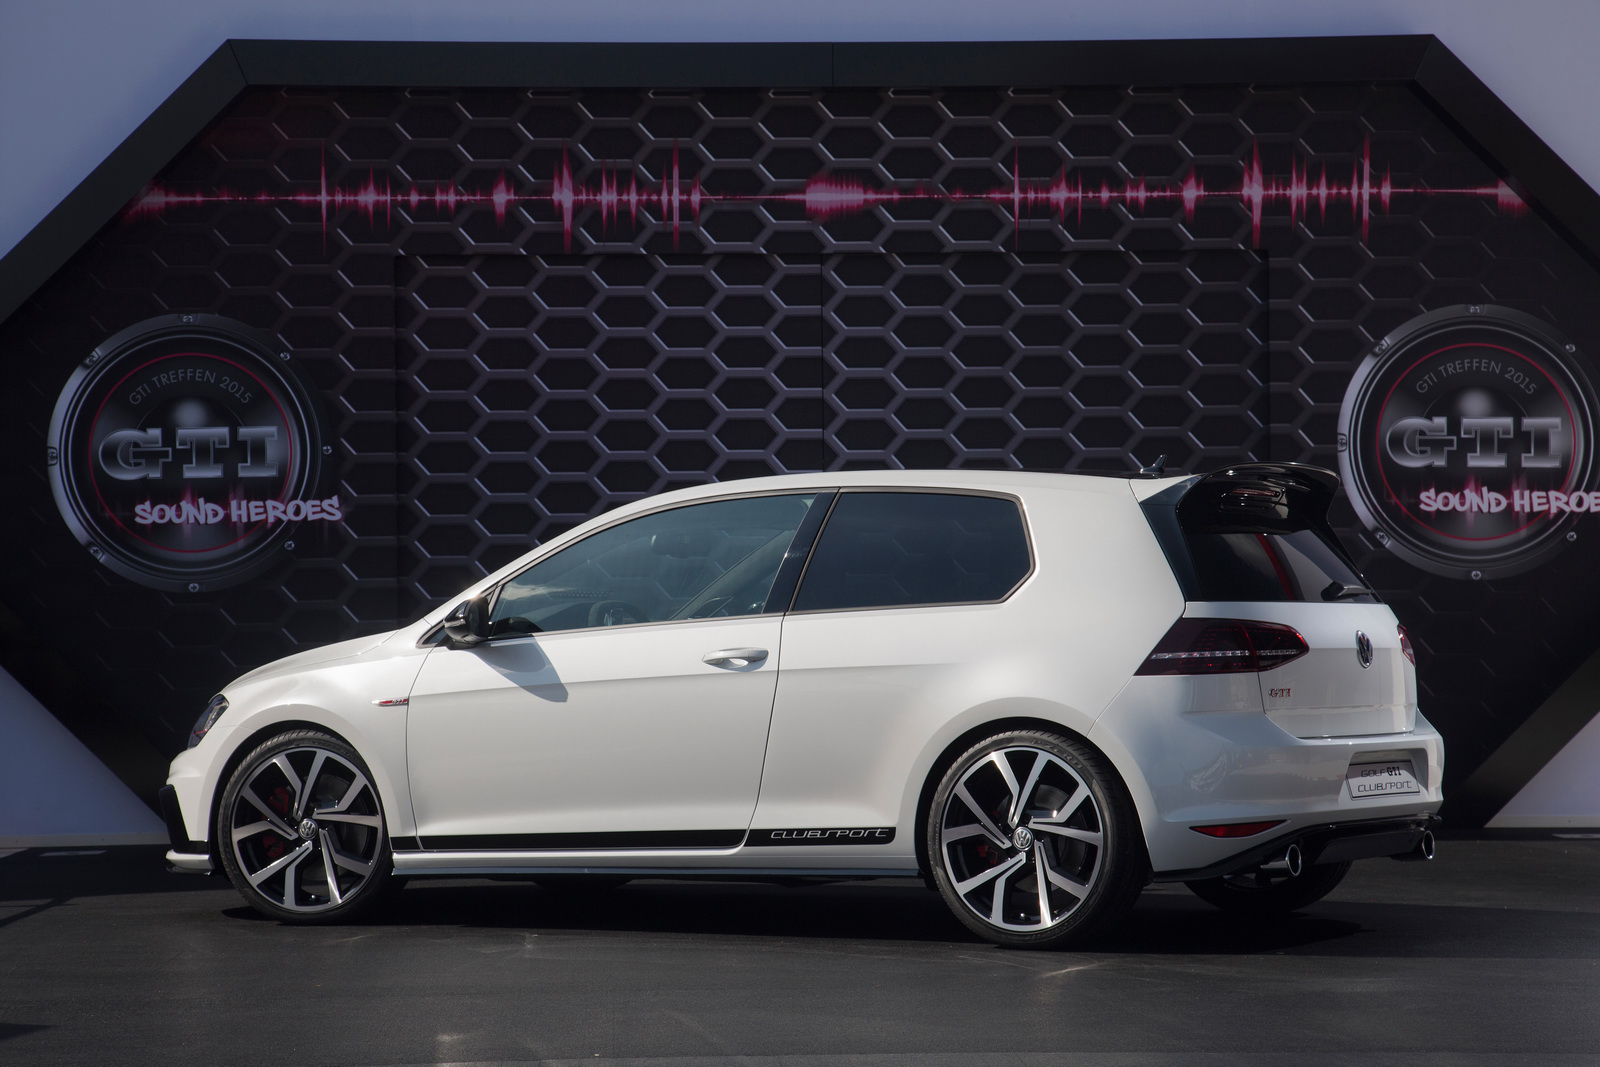 Steroidal VW Golf TCR Racer Officially Joins The GTI Family